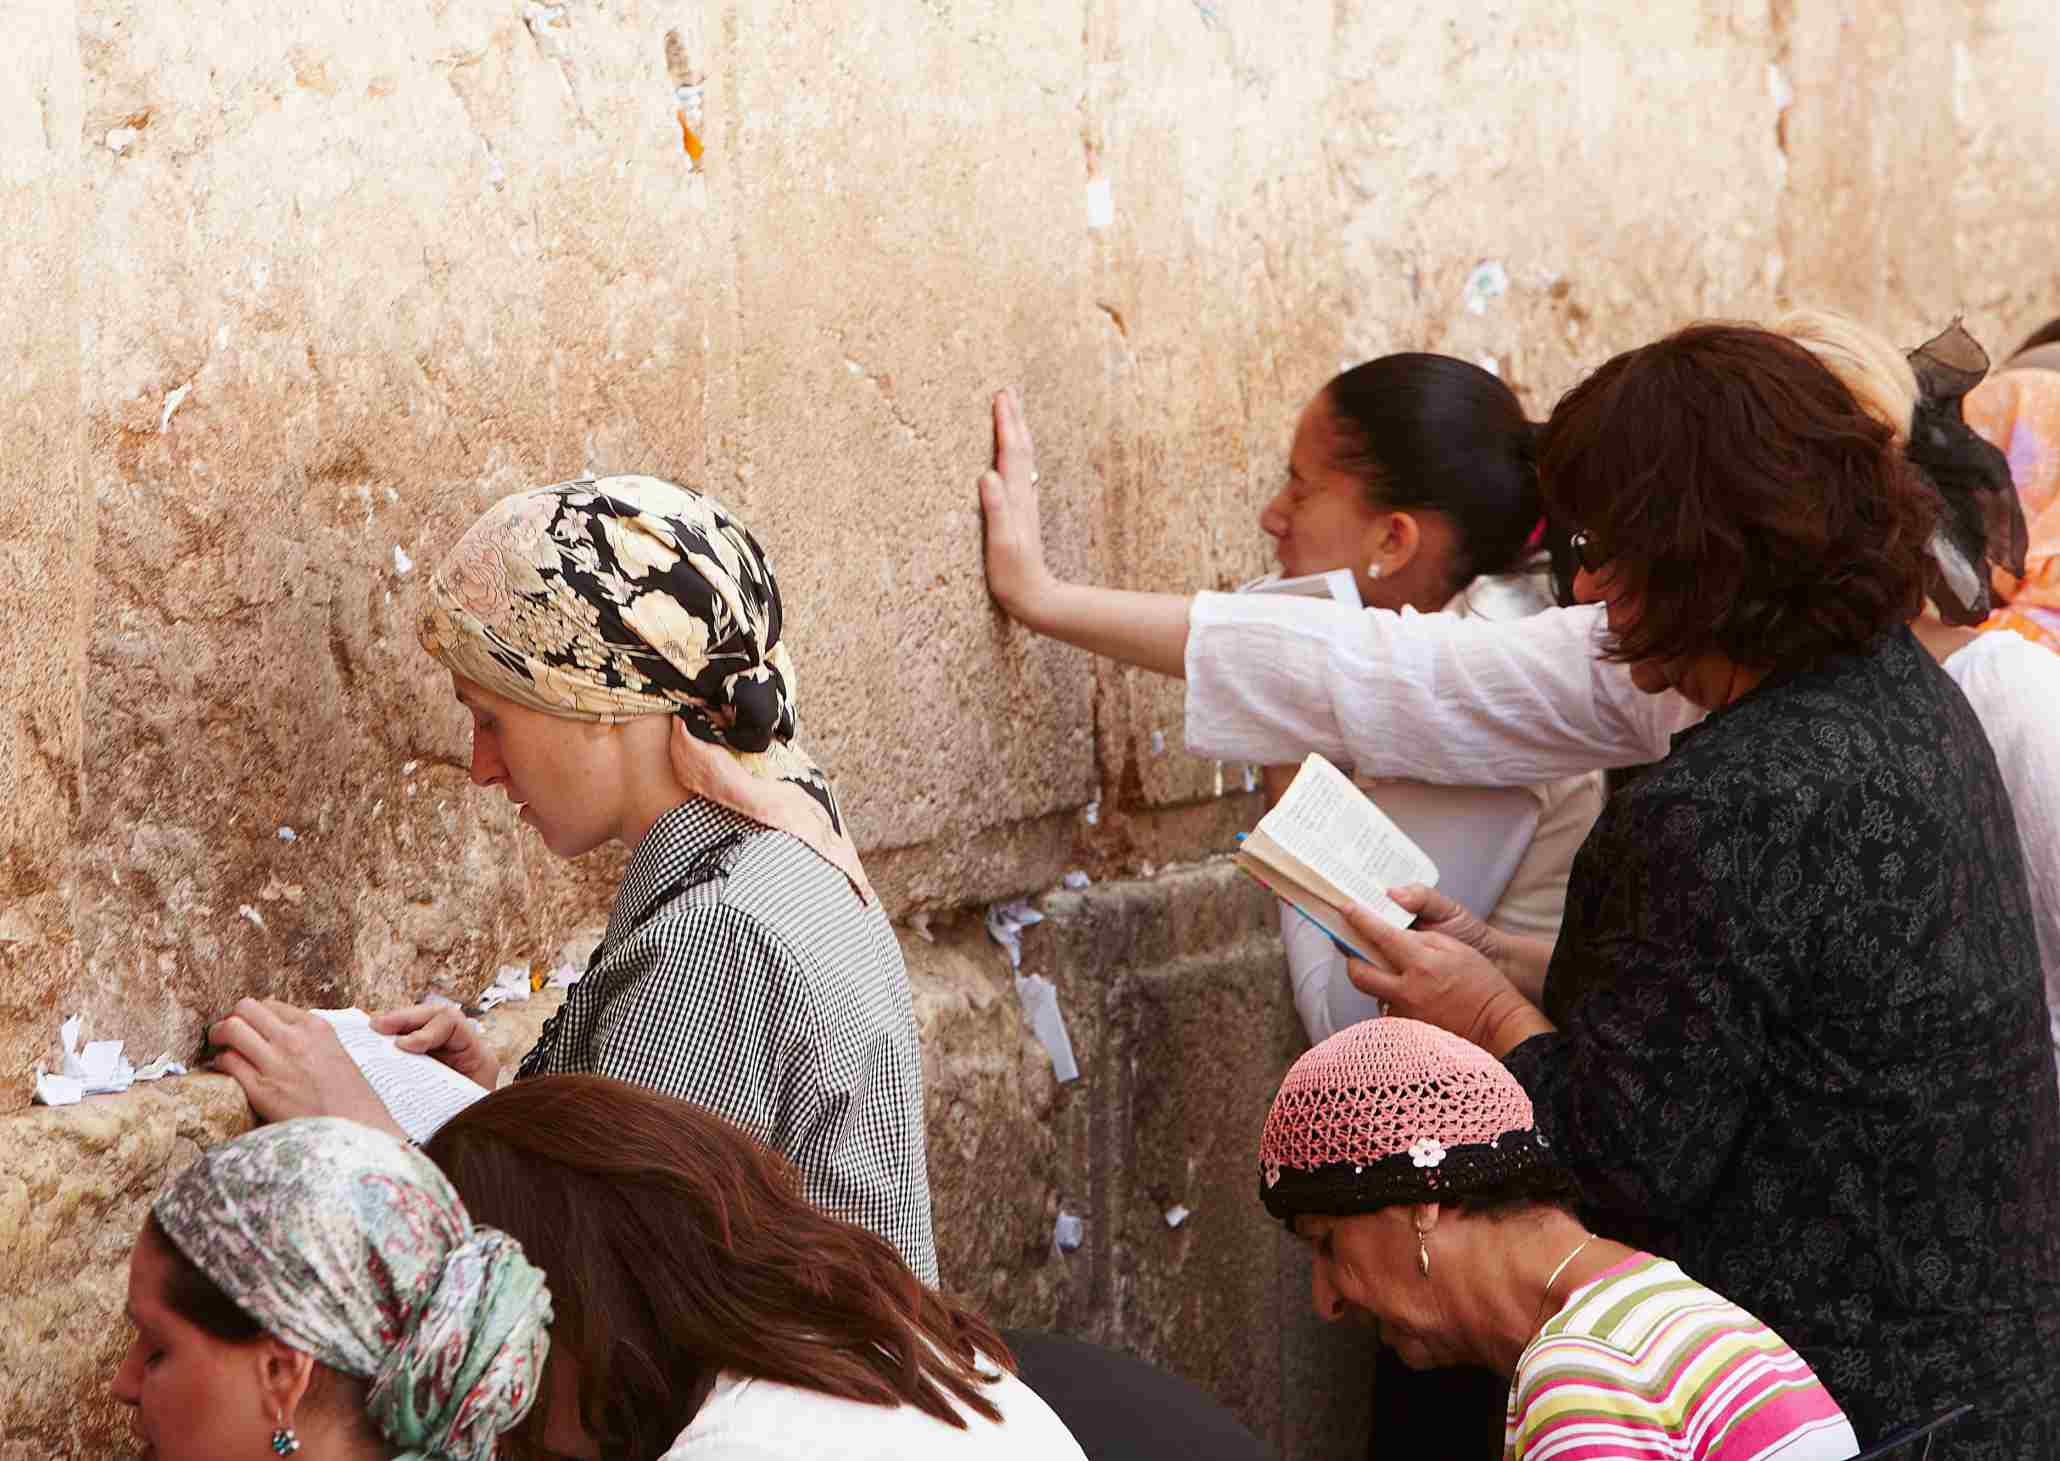 Women at the Kotel in Jerusalem during the day.